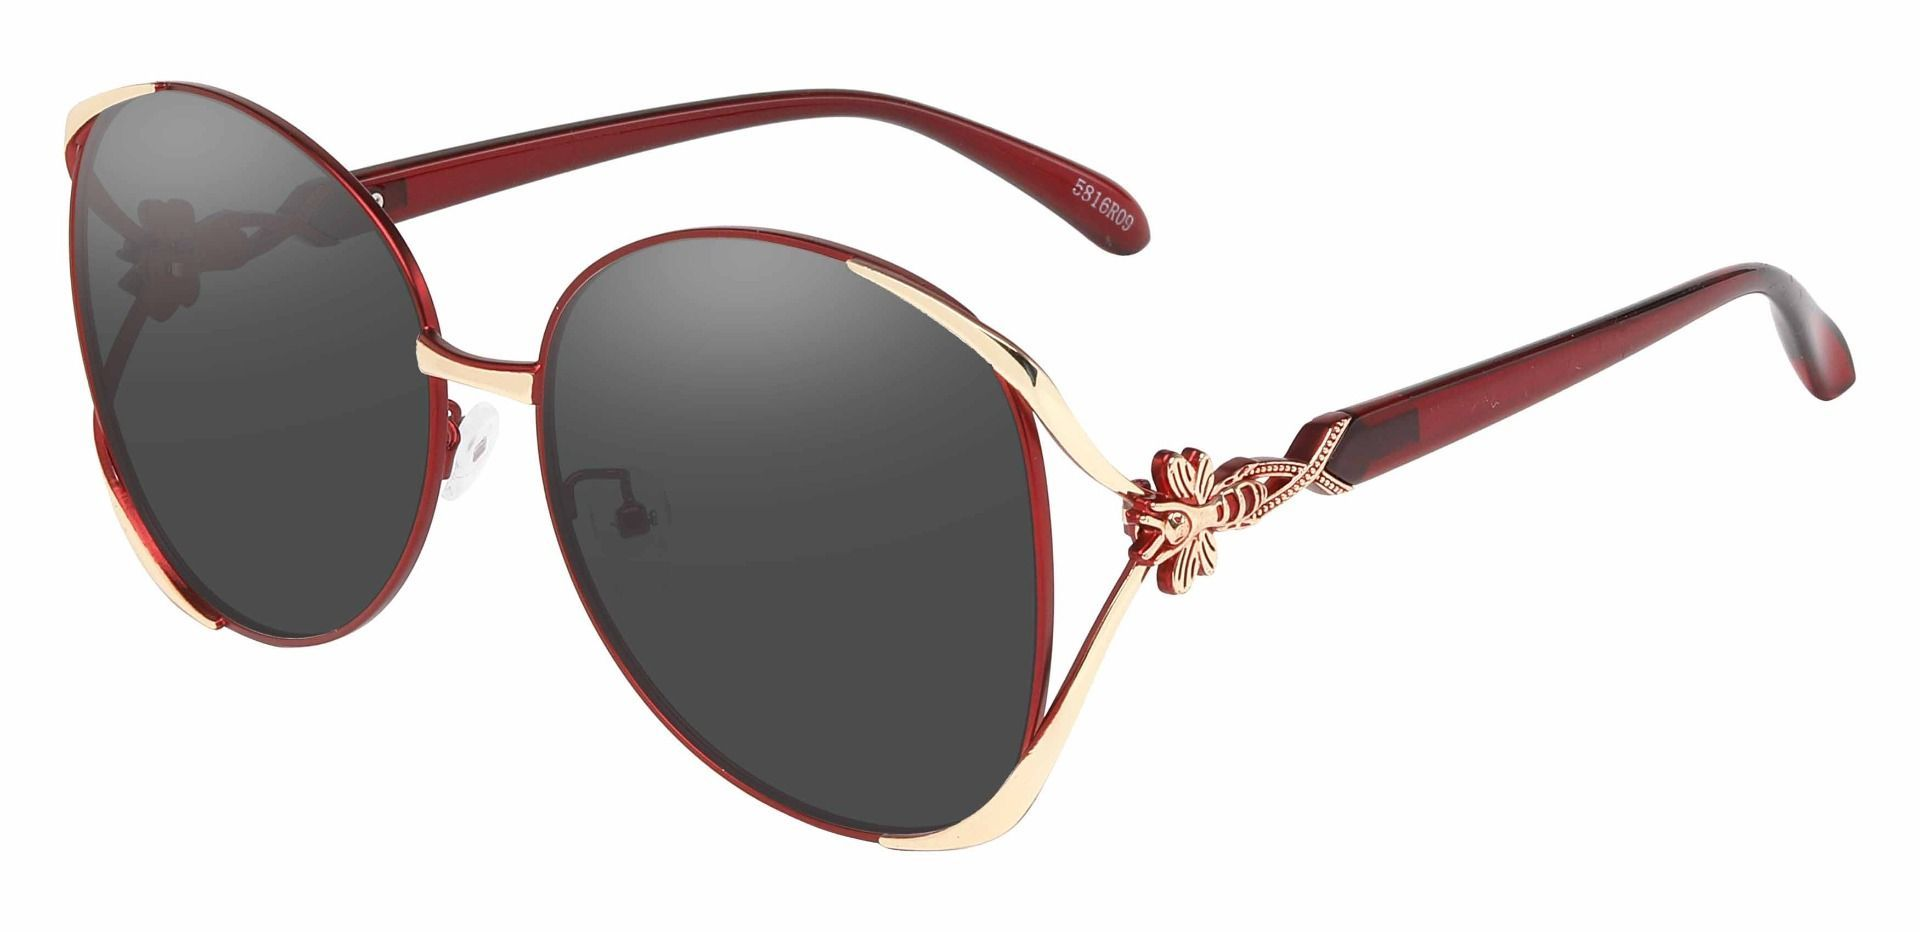 Nina Round Single Vision Sunglasses - Red Frame With Gray Lenses